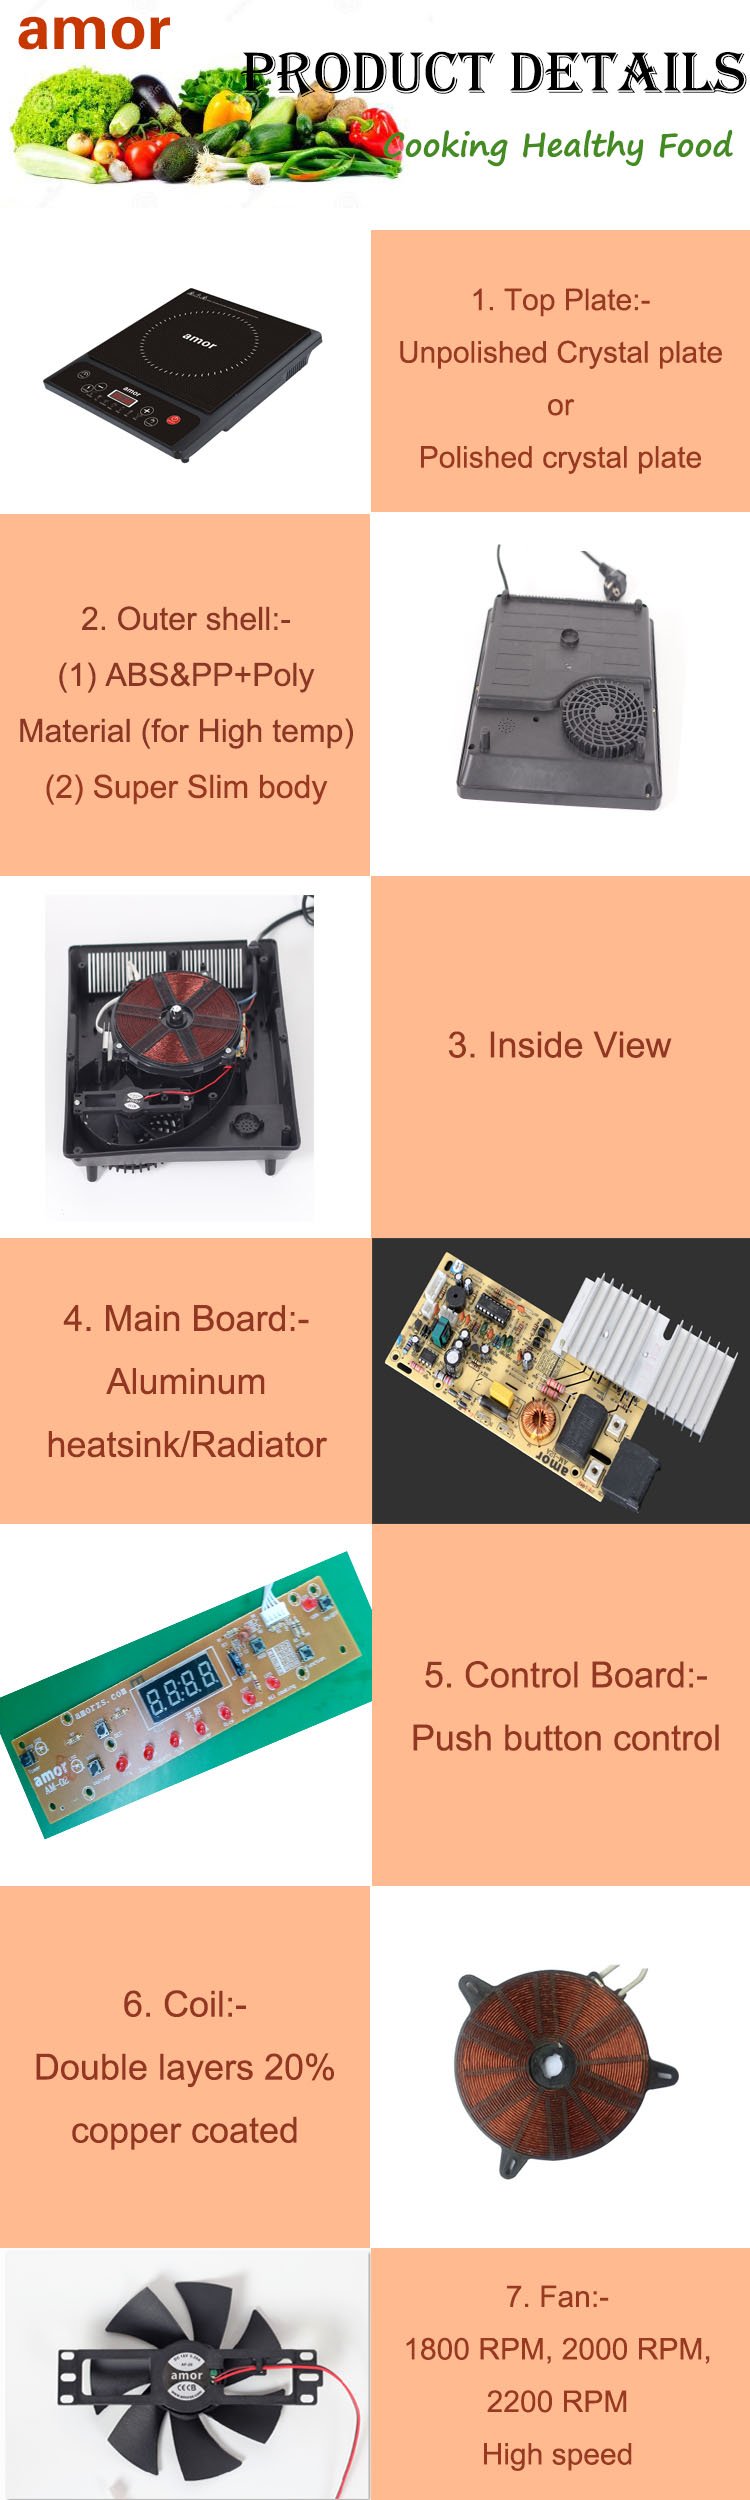 Hot Sales India Model Vigico Induction Cooker Buy Circuit Board Low Price Cookerb3 View